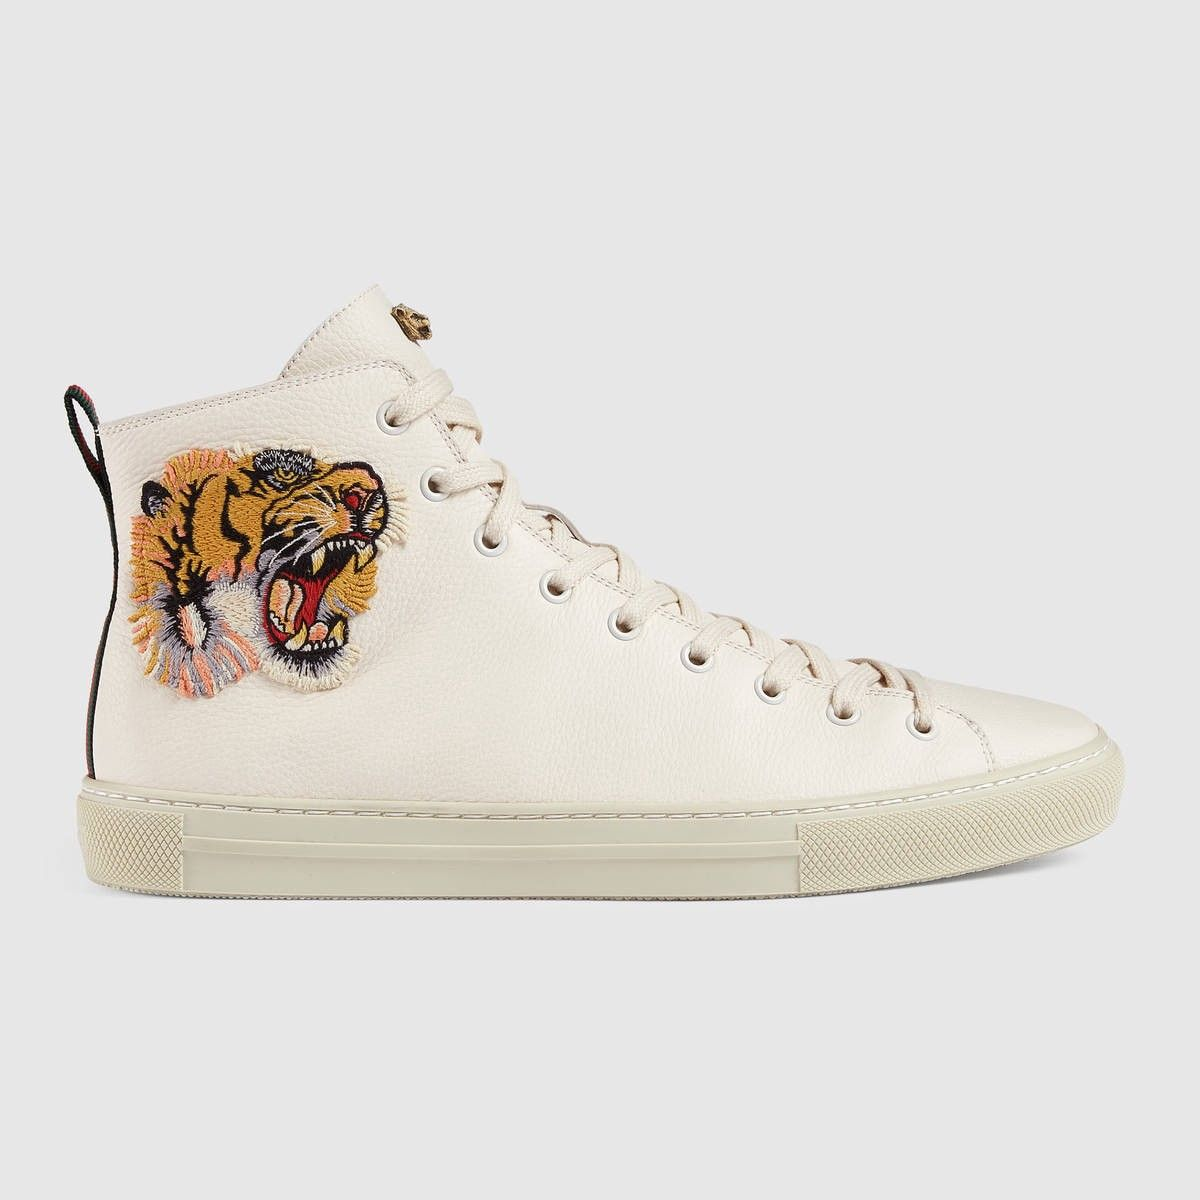 9df80526858 Gucci for Men. GUCCI Leather high-top with tiger - white leather.  gucci   shoes